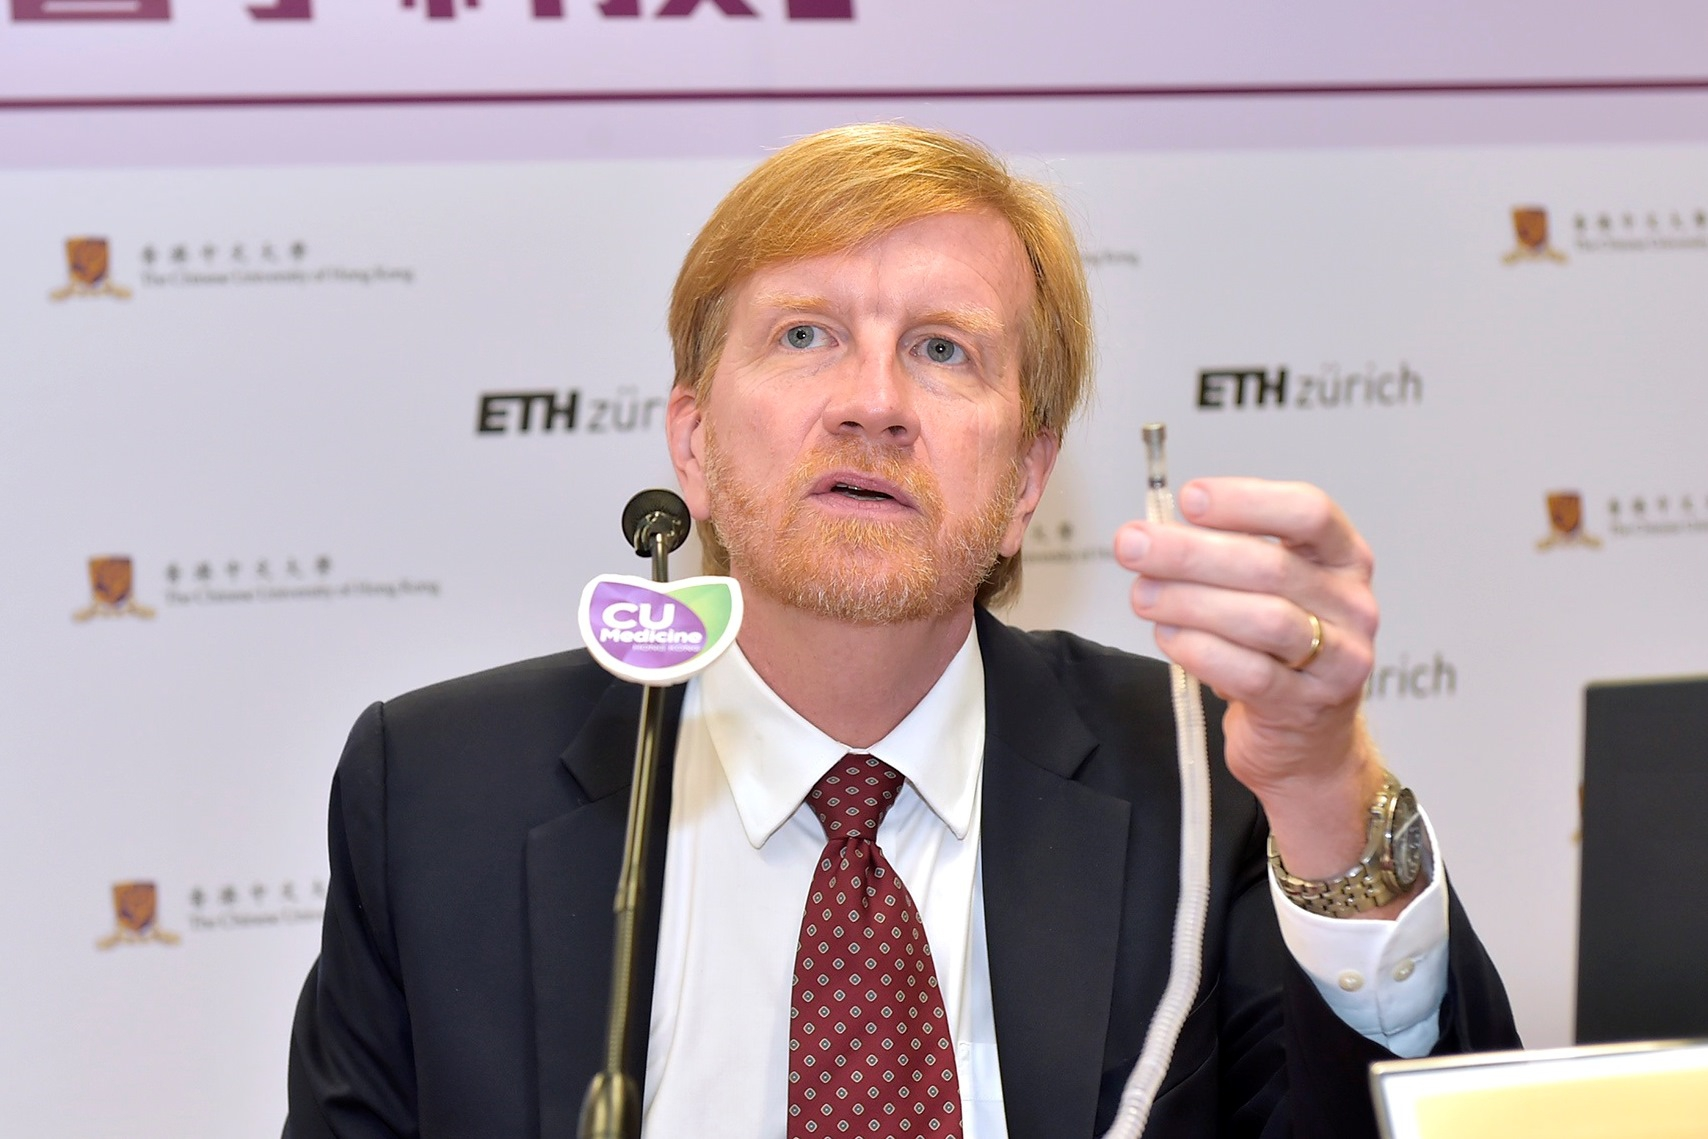 Prof. Dr. Bradley NELSON says that the tip of the magnetic guided endoscope is made with nanotechnology, which can deliver drugs or conduct biopsy.